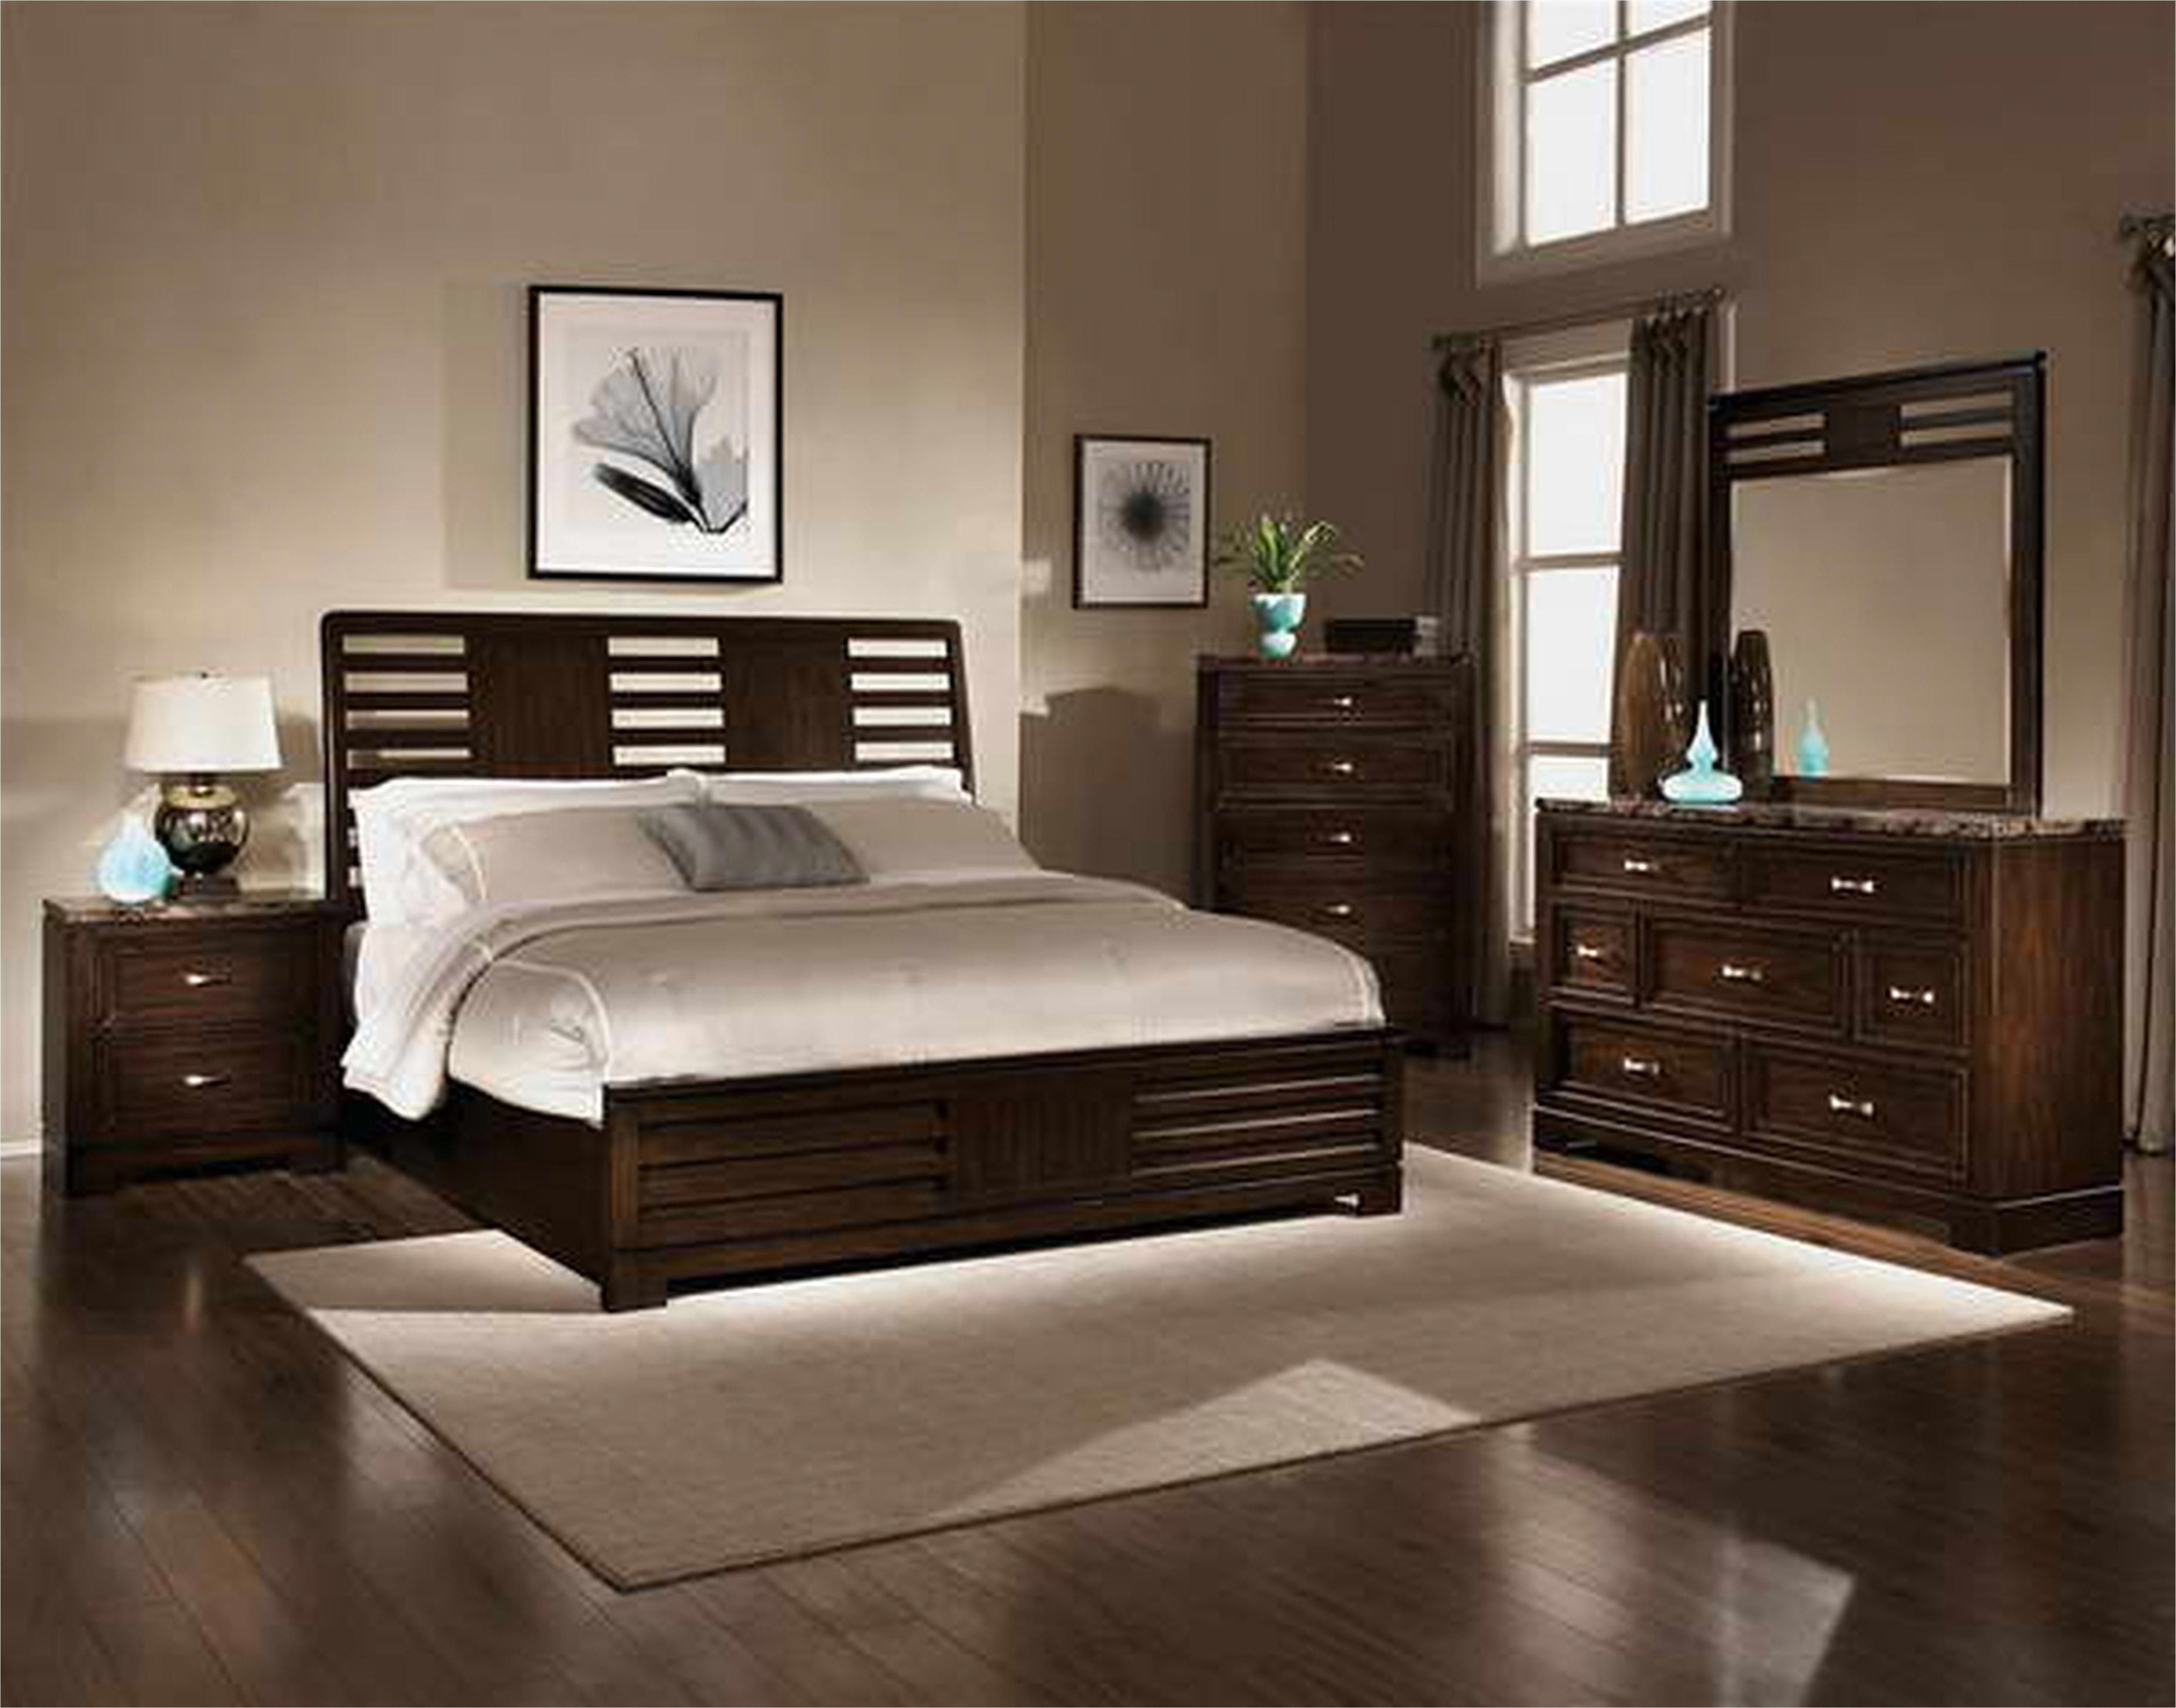 Bedroom Furniture Layout Completely transform and produce your